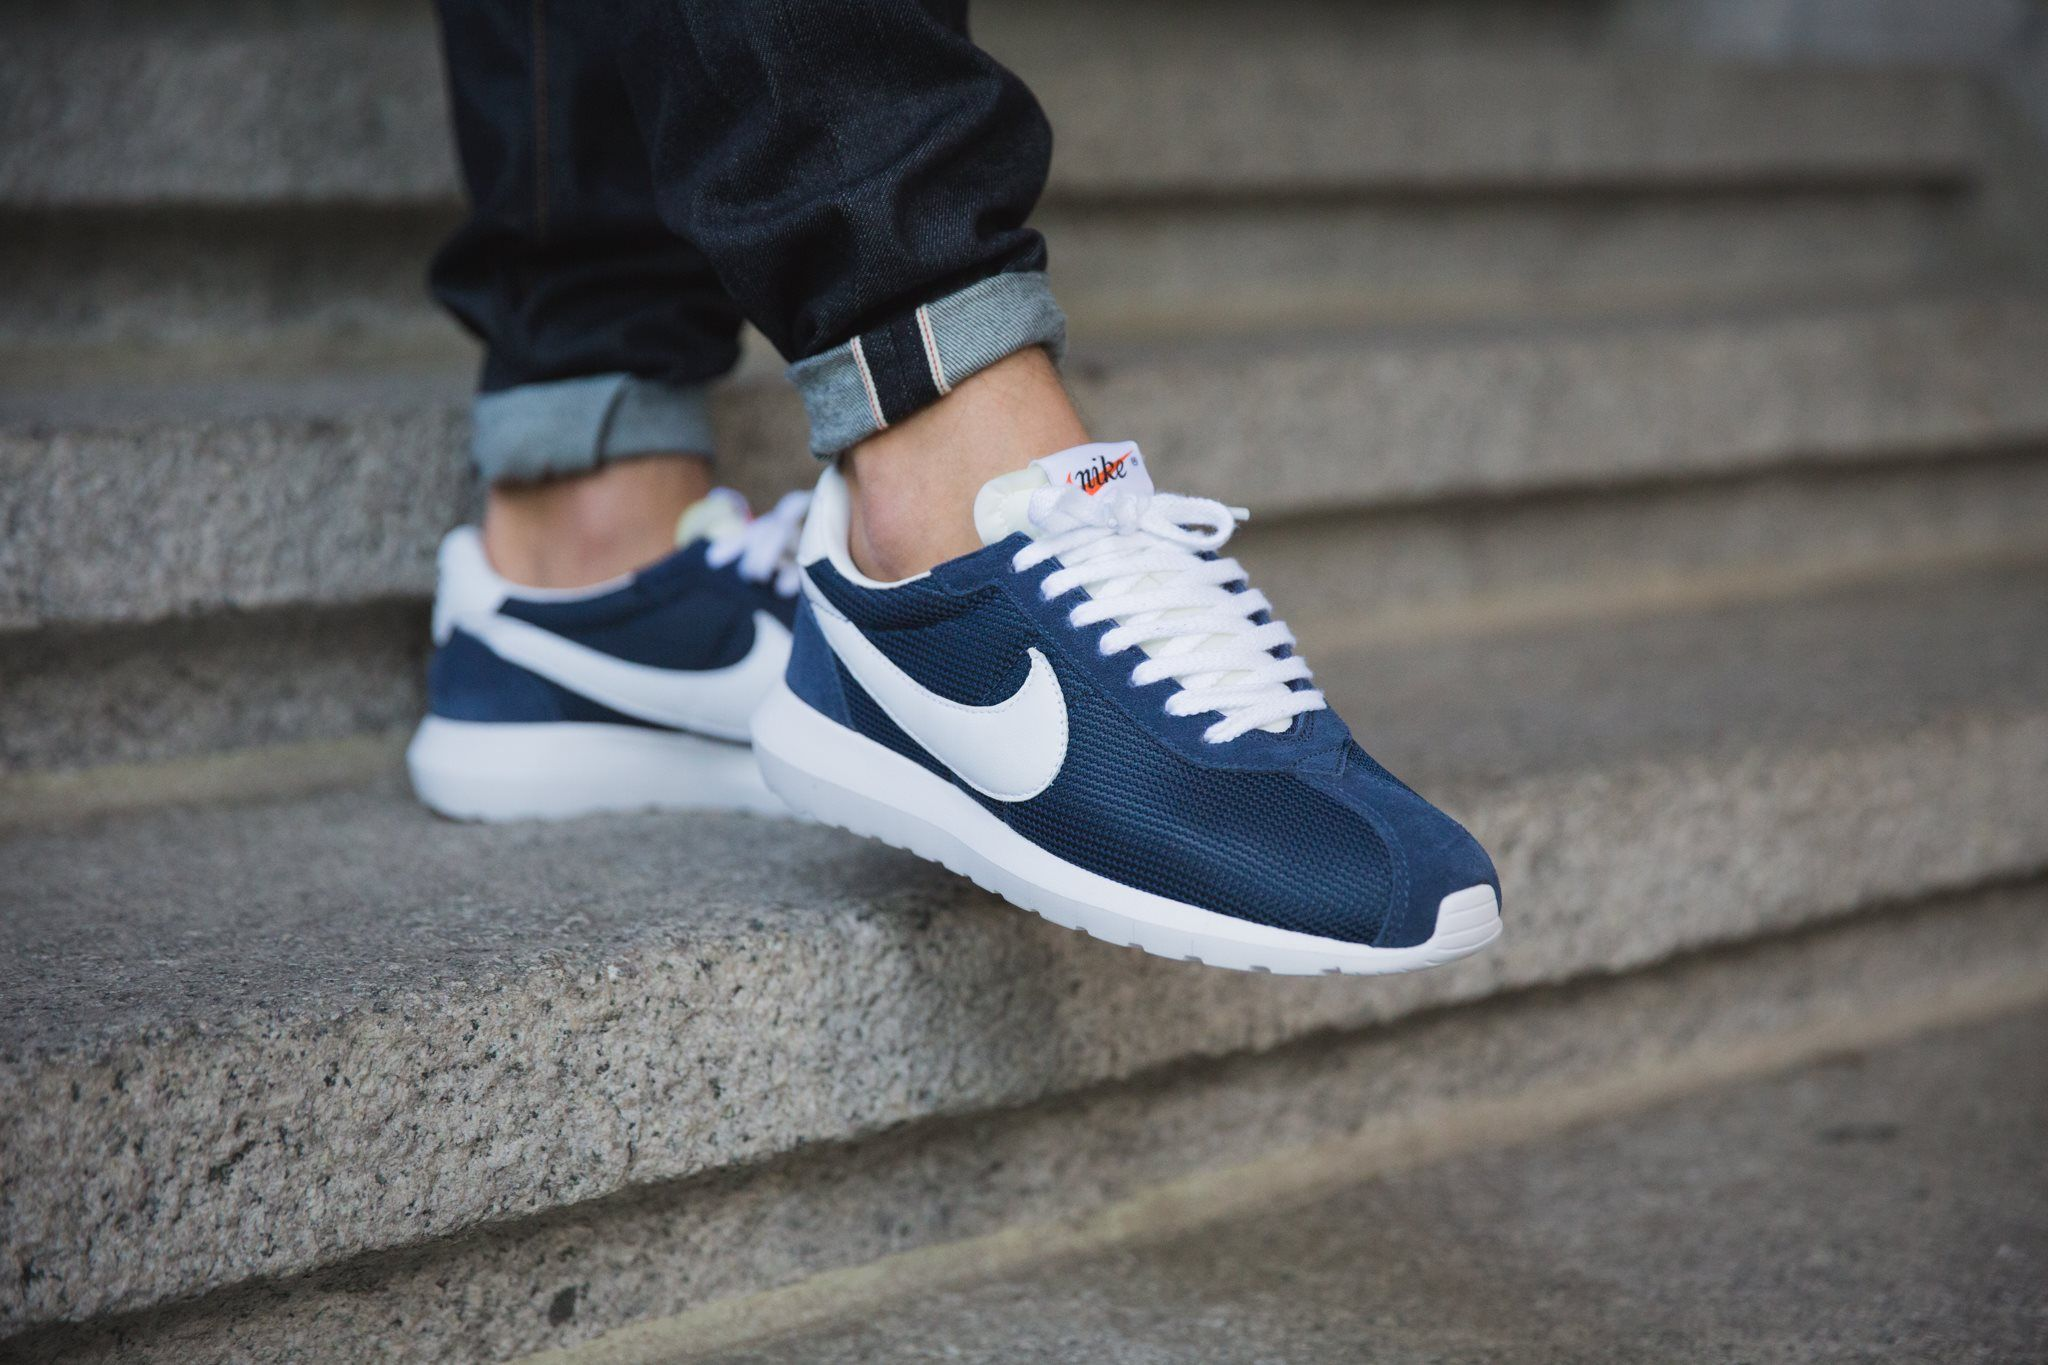 Another Look At The Nike Roshe LD-1000 in Obsidian